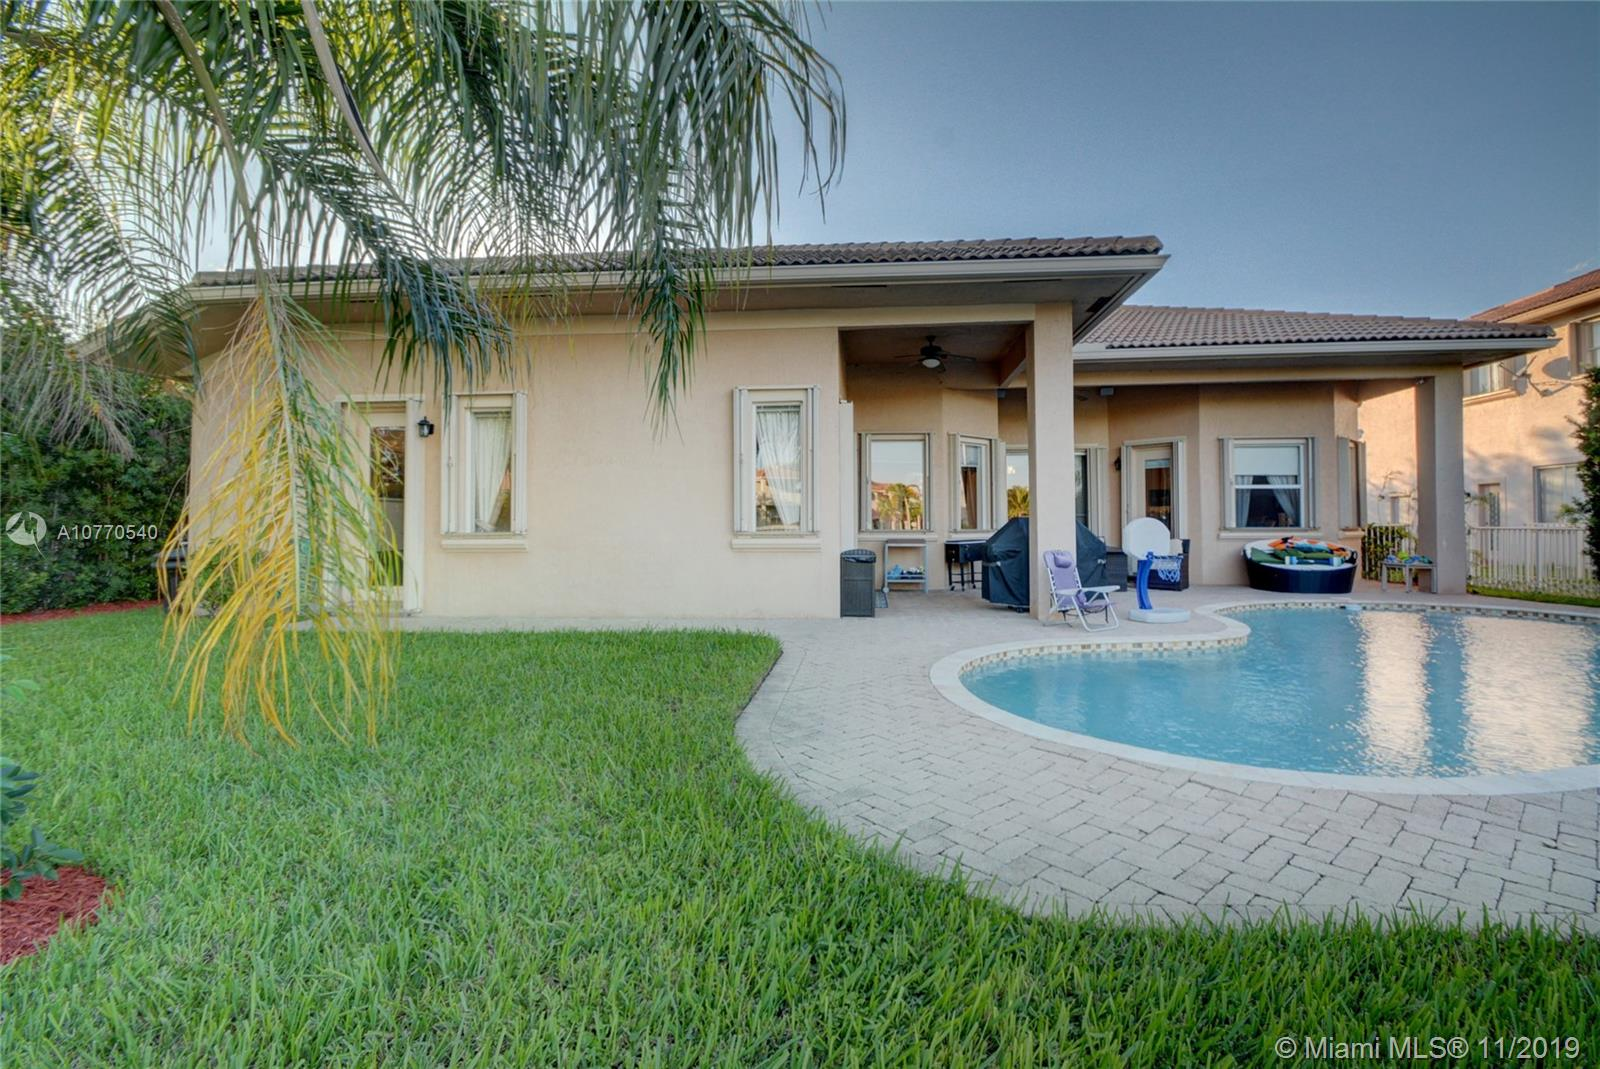 Listing A10770540 - Large Photo # 30